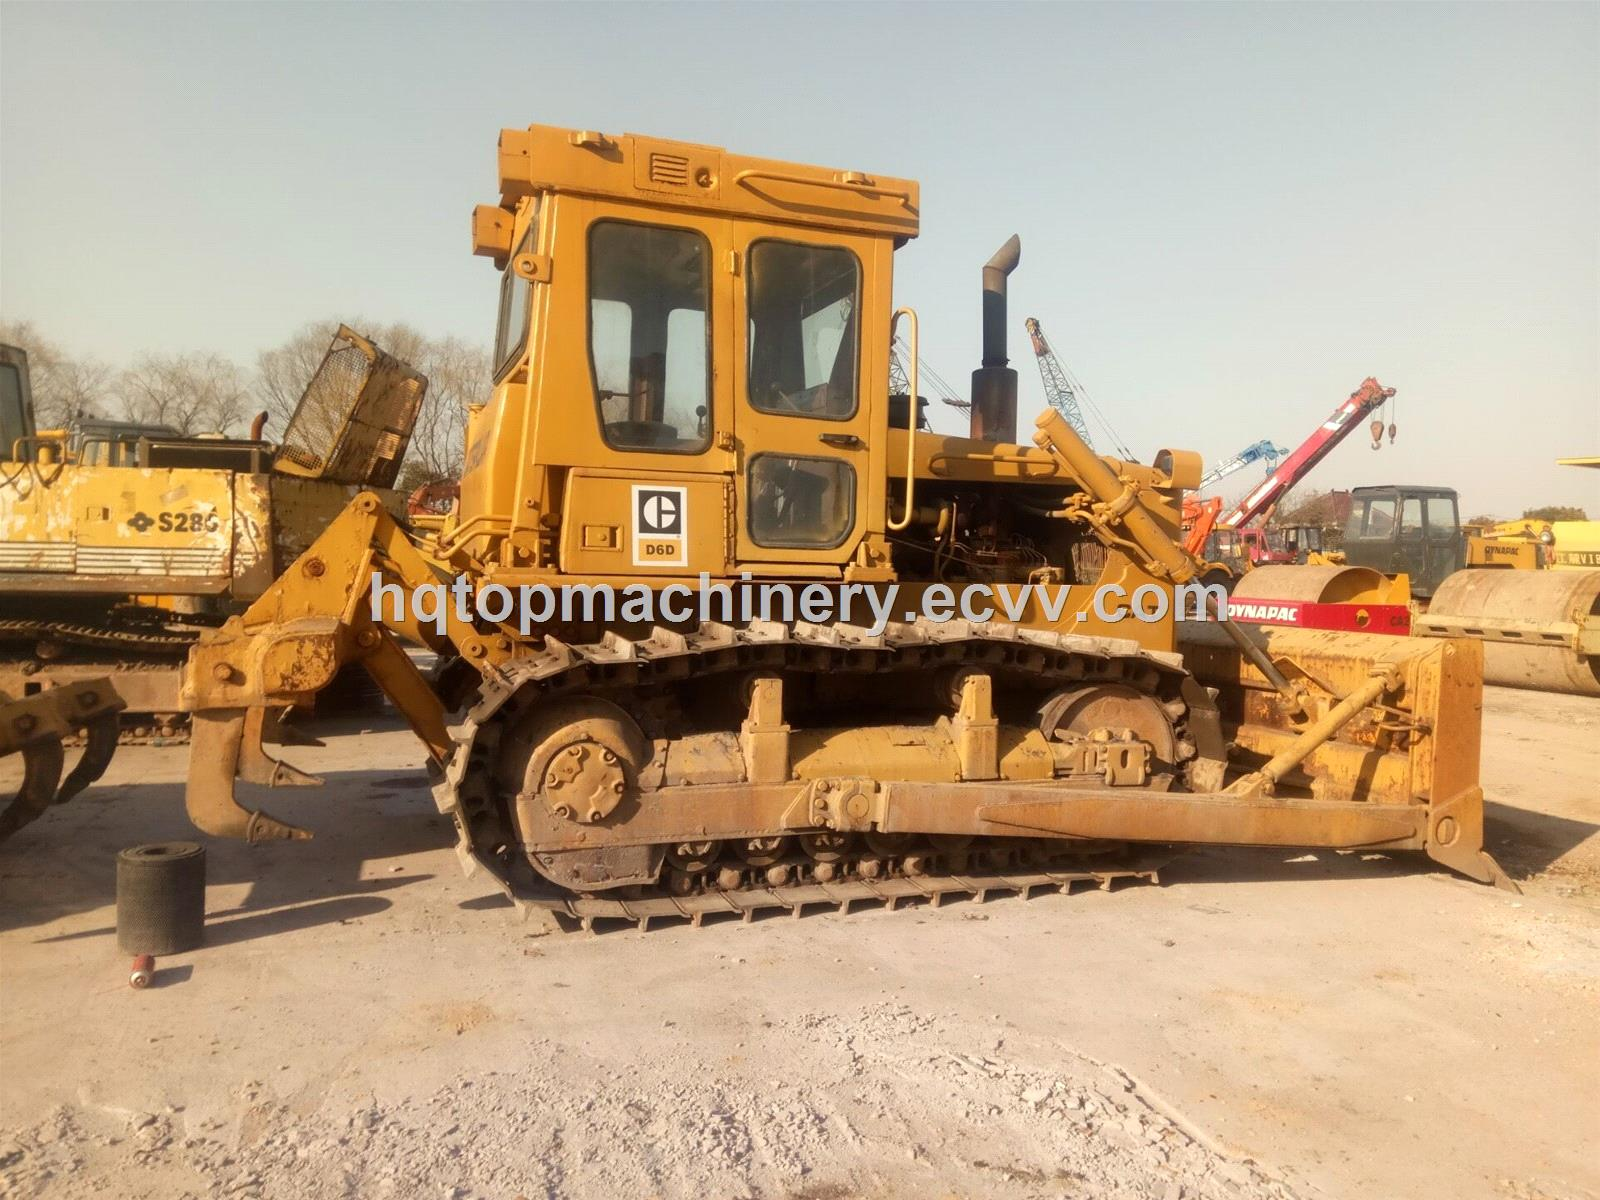 Used CAT D6D D6G Japanese Crawler Bulldozer, Secondhand D6 Small Bulldozer  Dozer for Sale